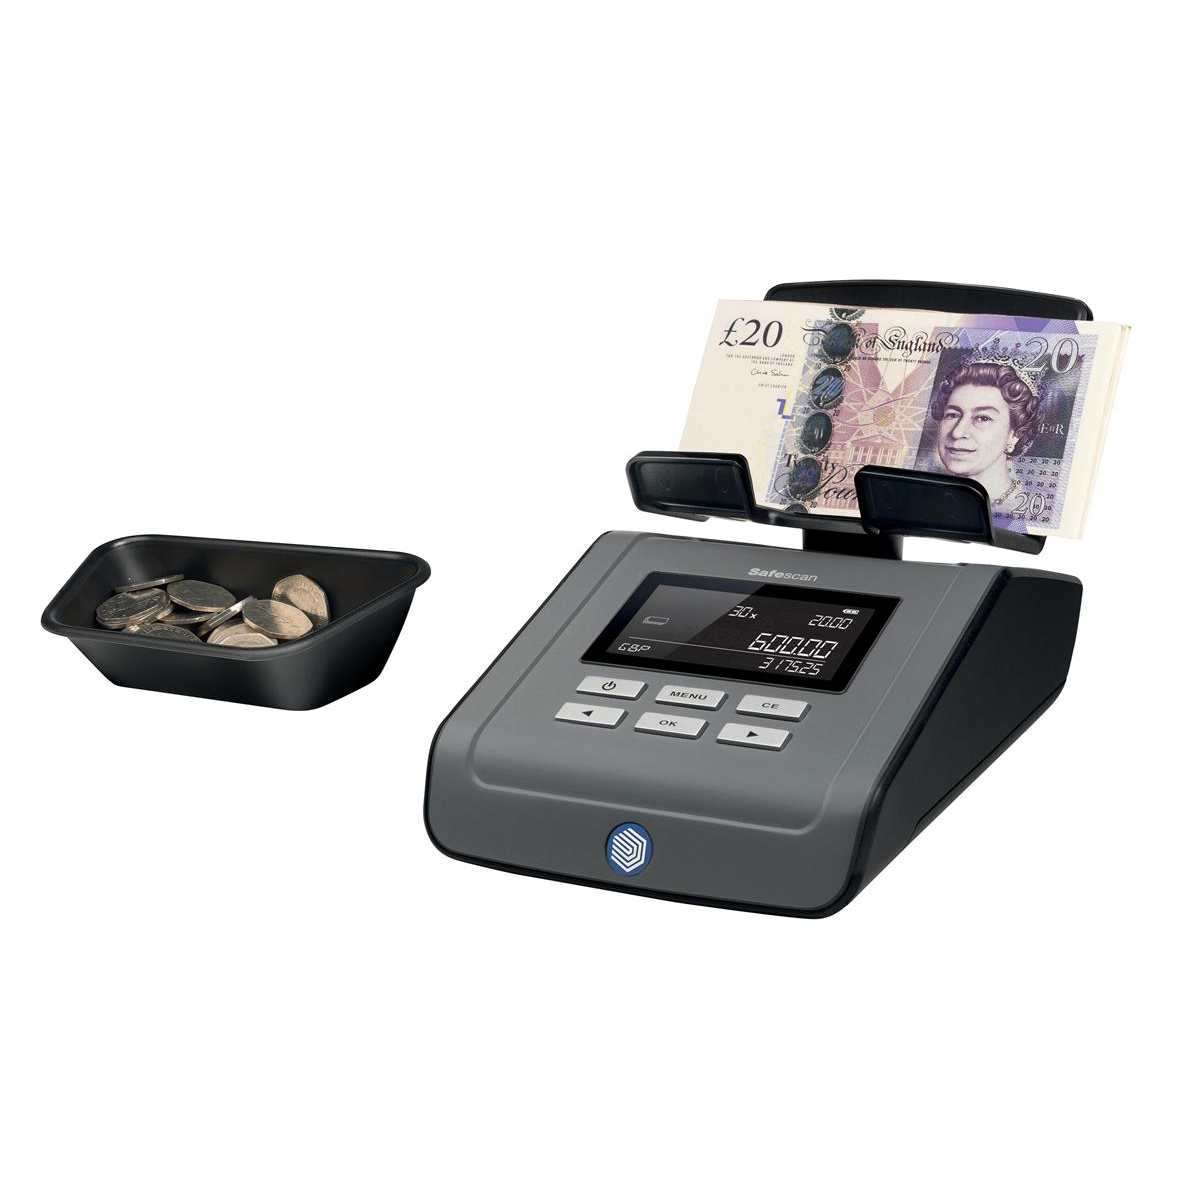 Safescan 6165 Money Counting Scale Ref 131-0573